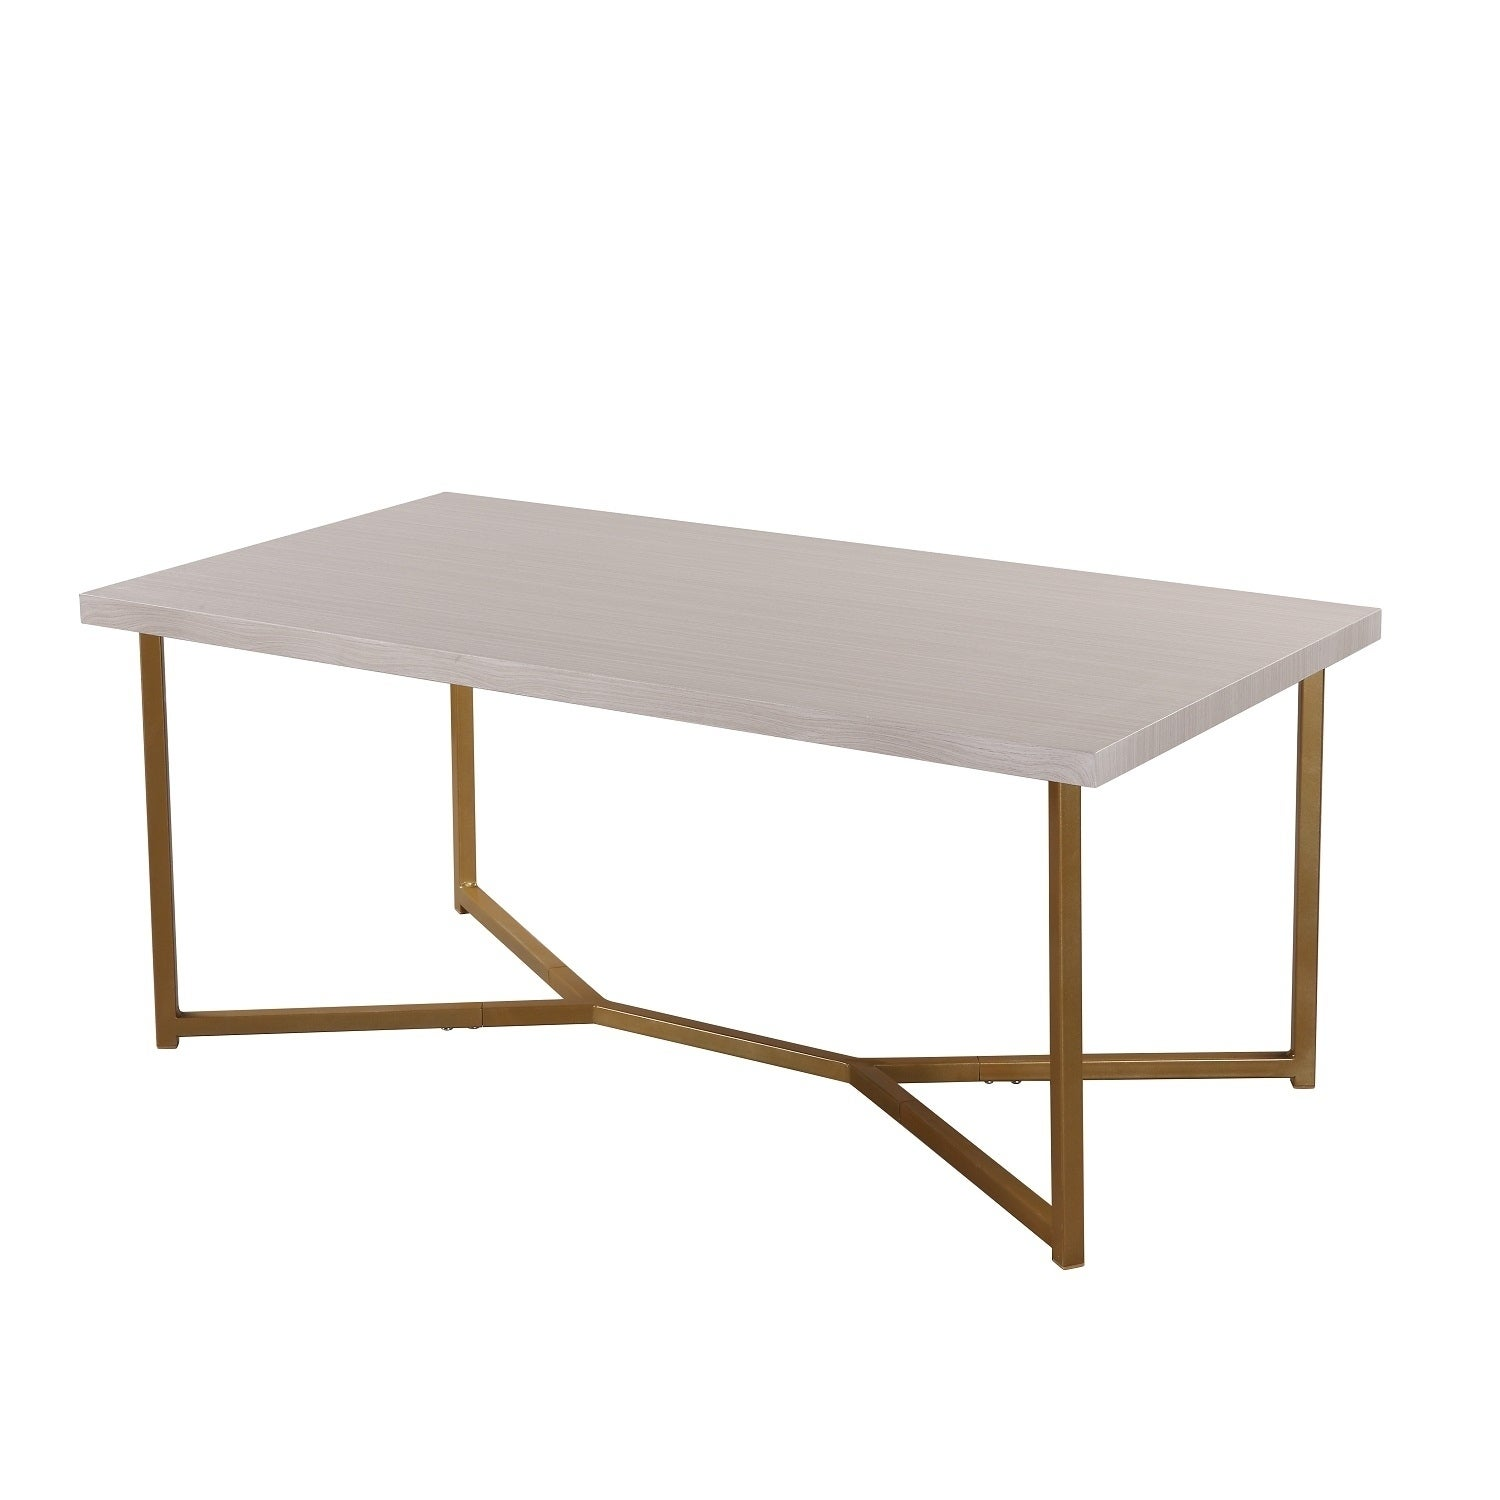 Merax Marble Wooden Coffee Table With Stylish Y Leg Base